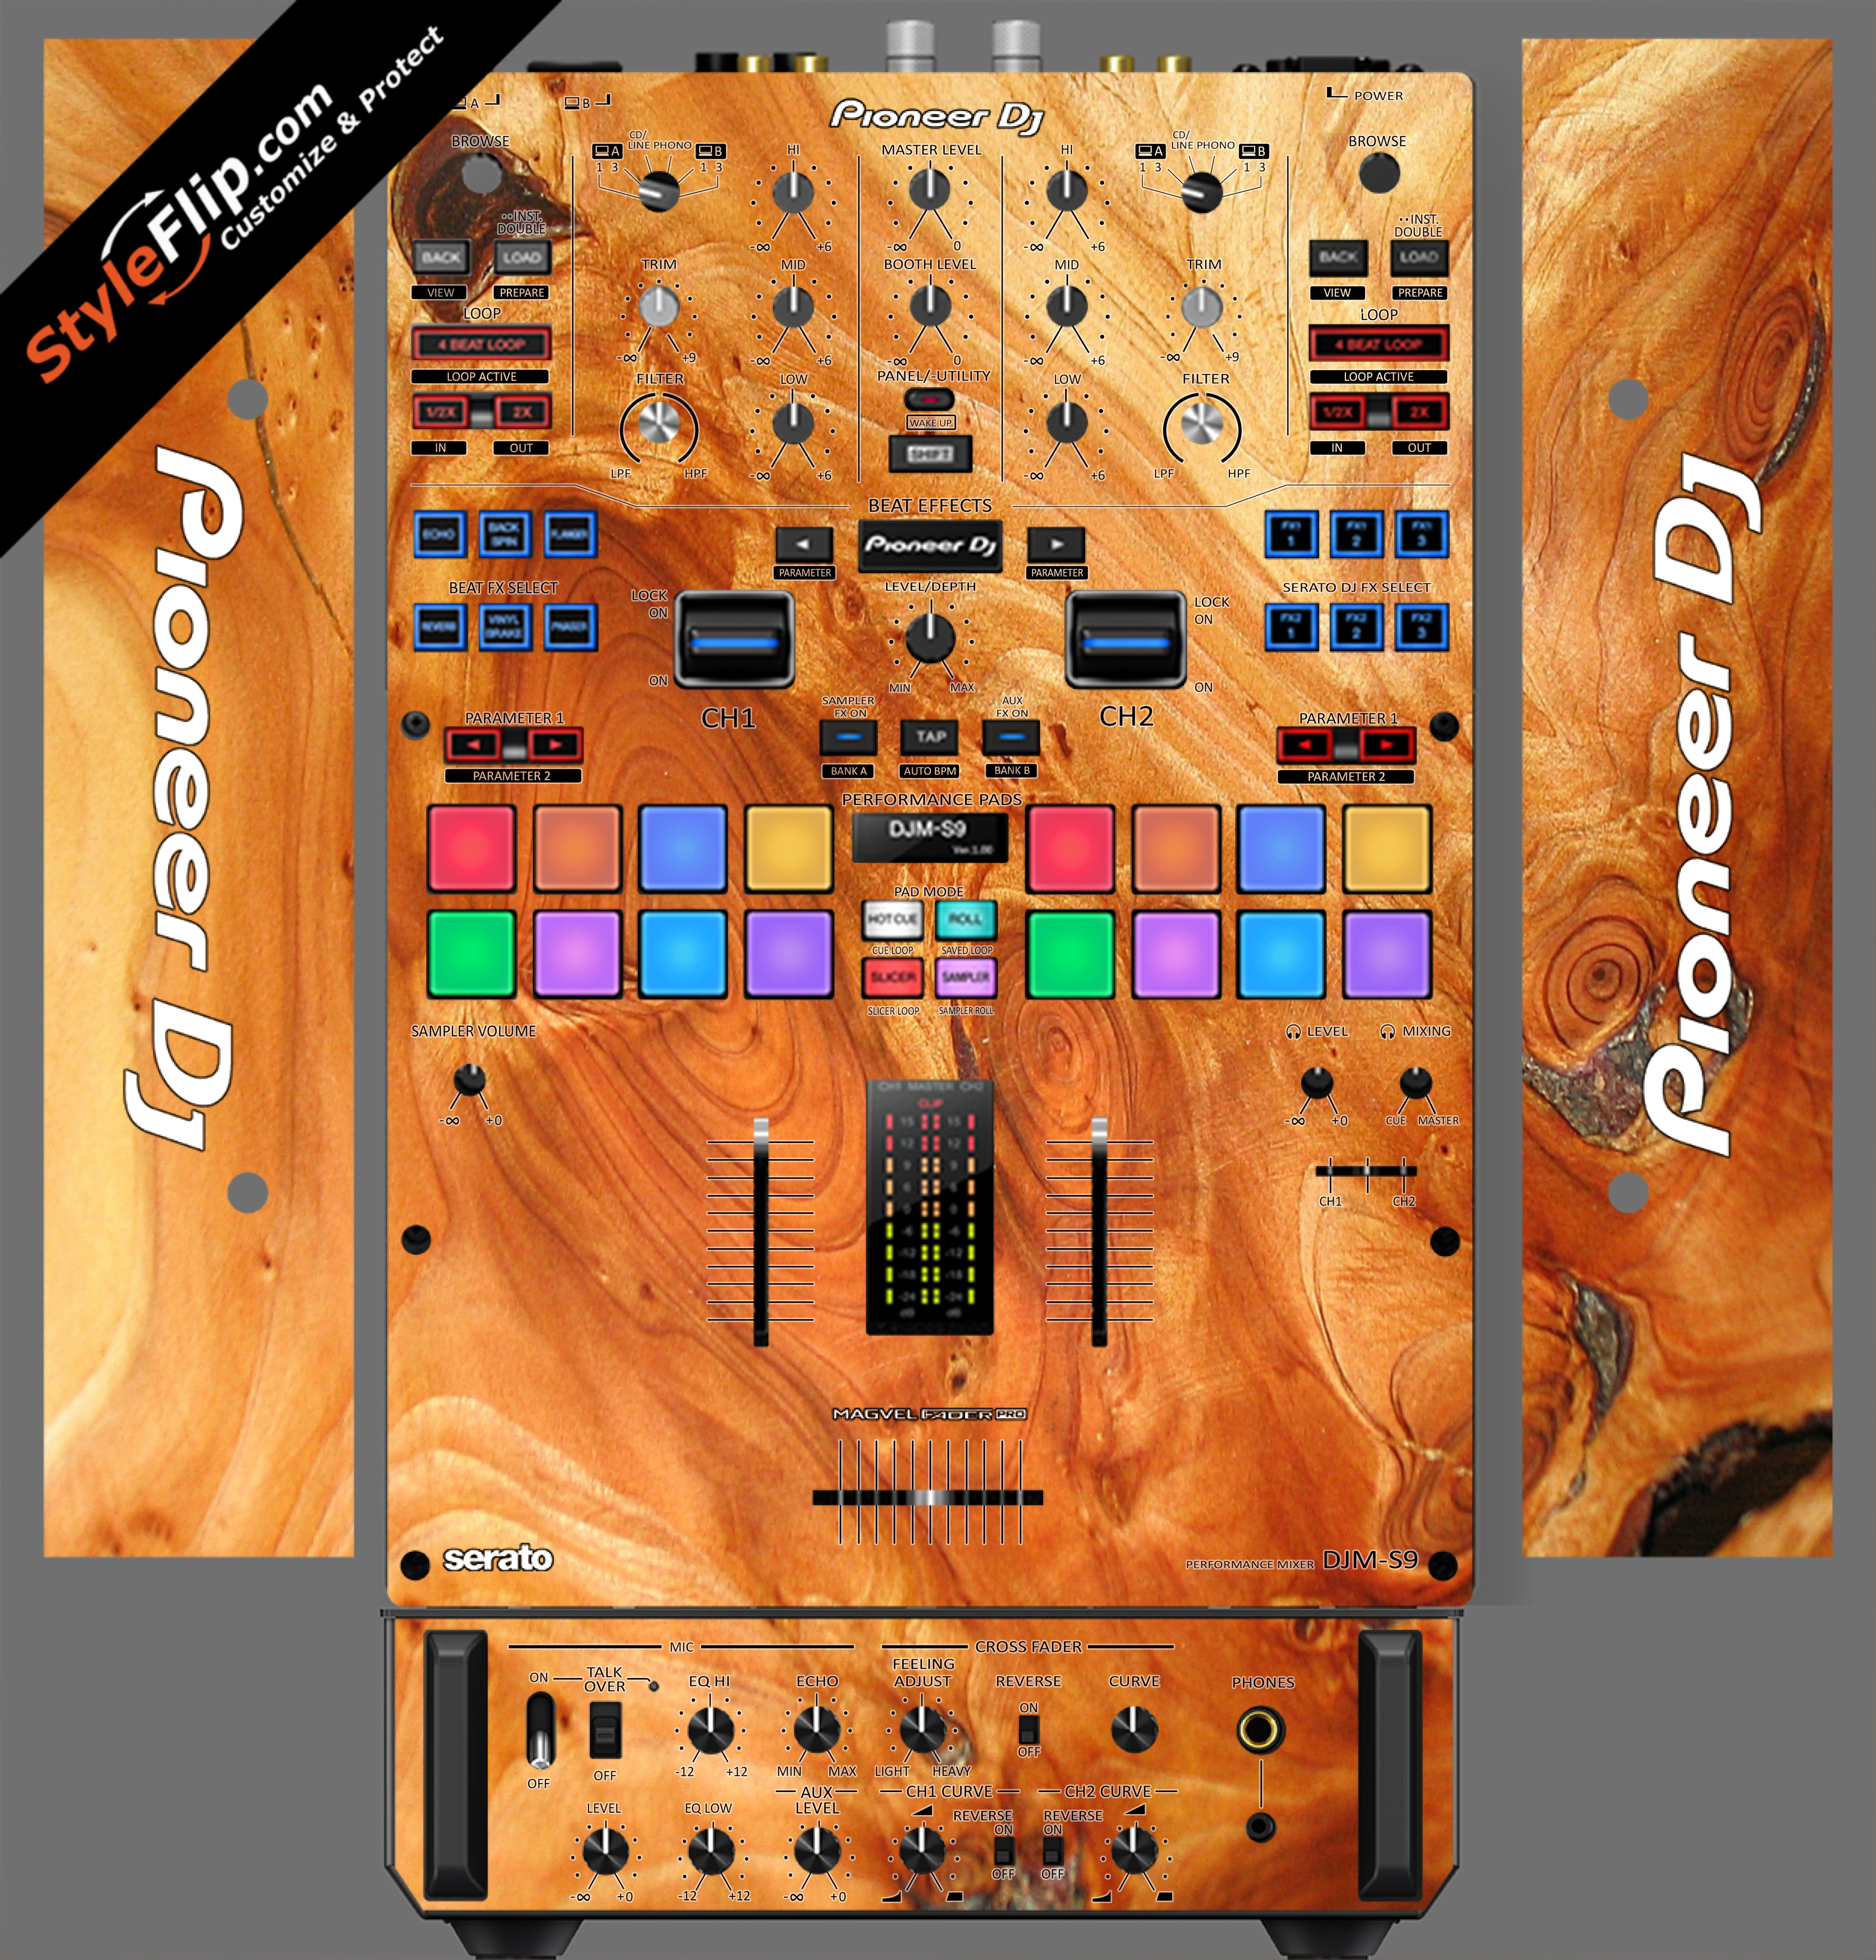 Stained Wood Pioneer DJM S9